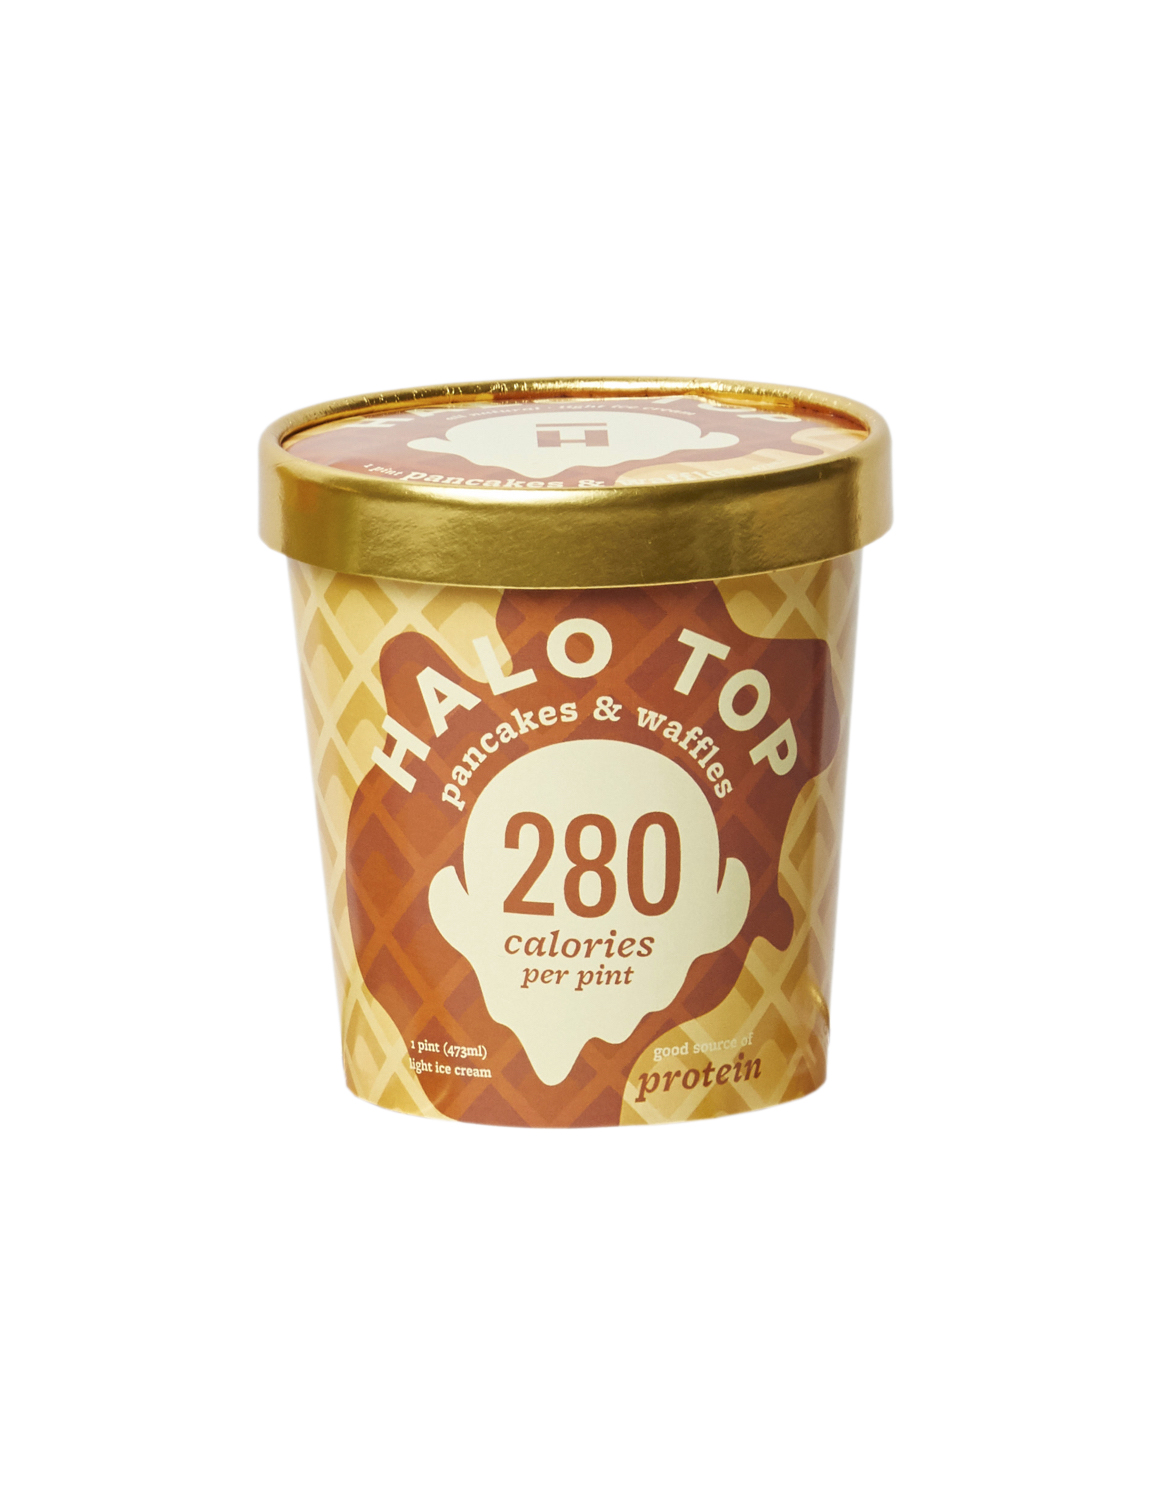 Halo Top Pancakes & Waffles